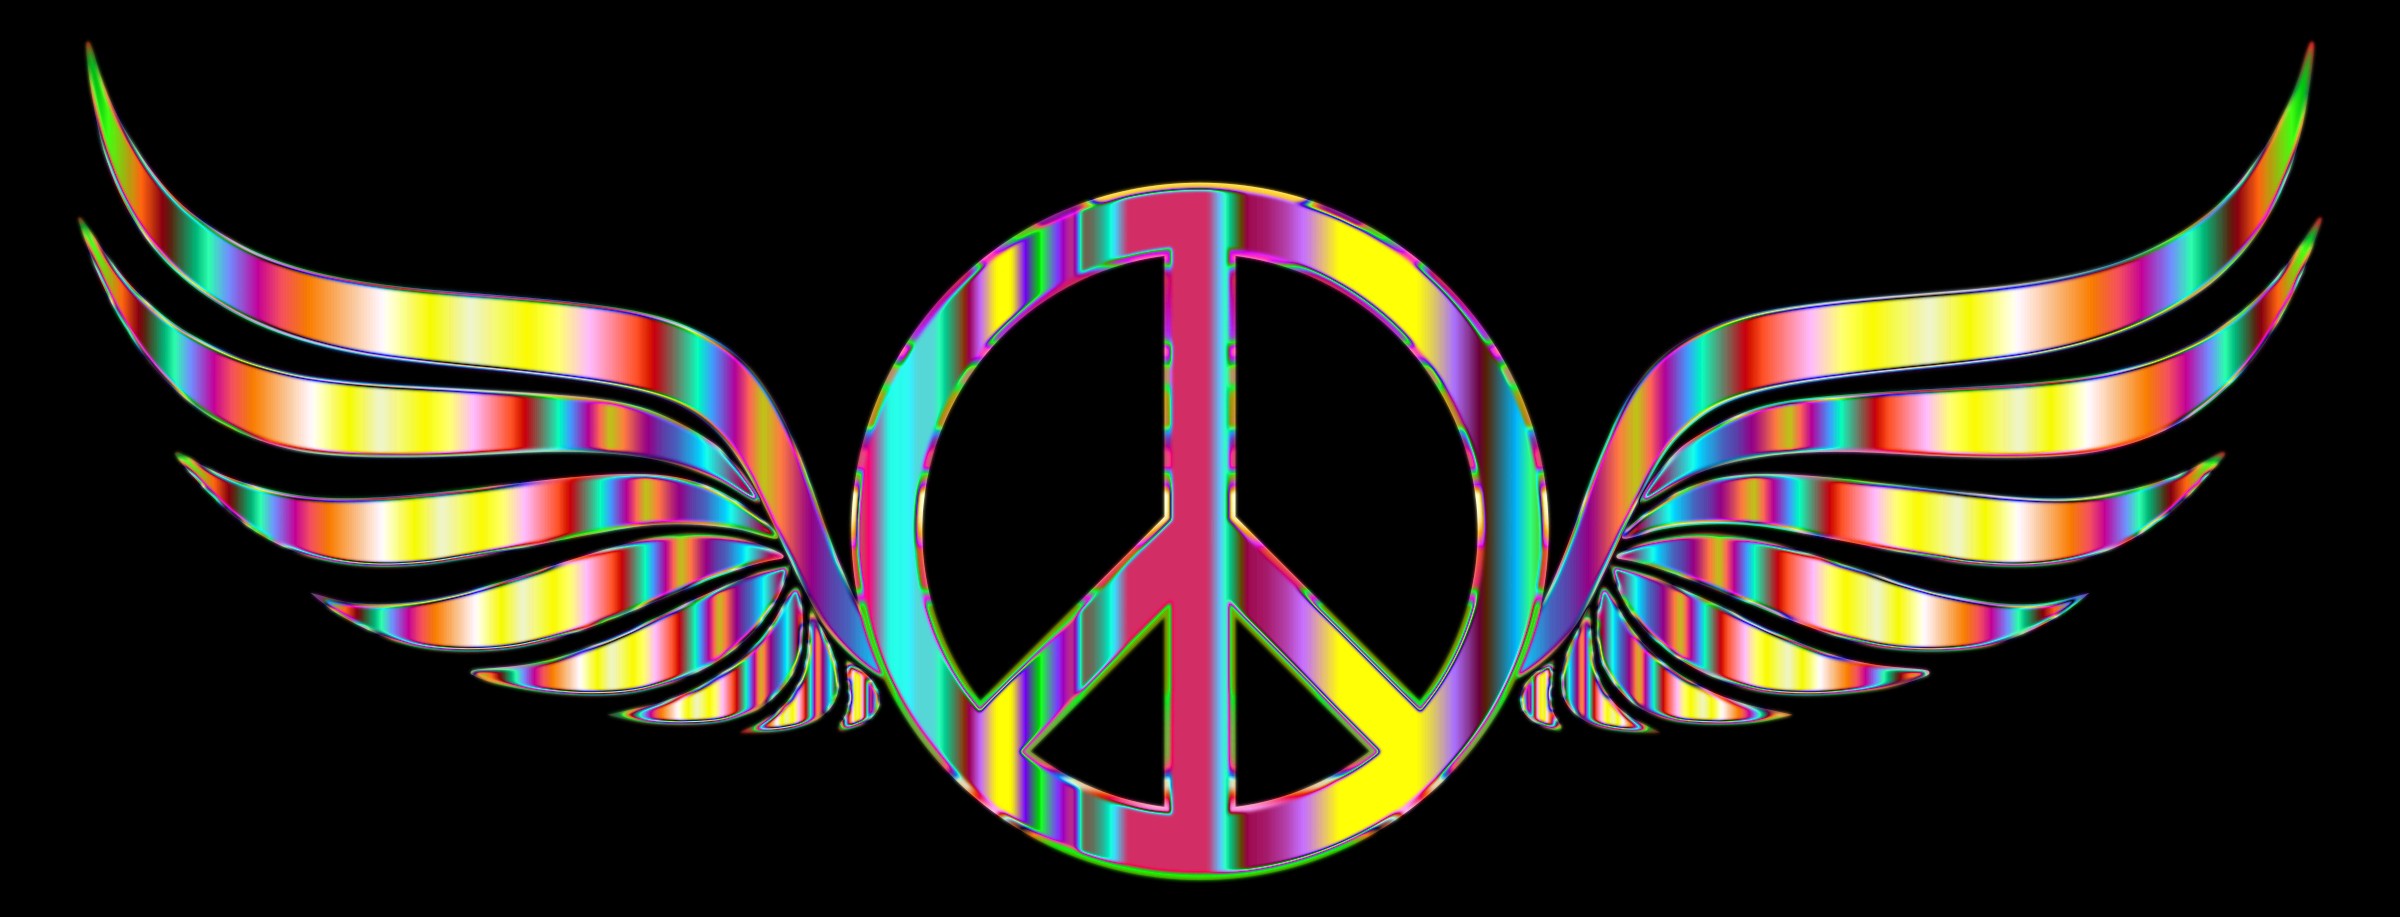 Gold Peace Sign Wings Psychedelic by GDJ